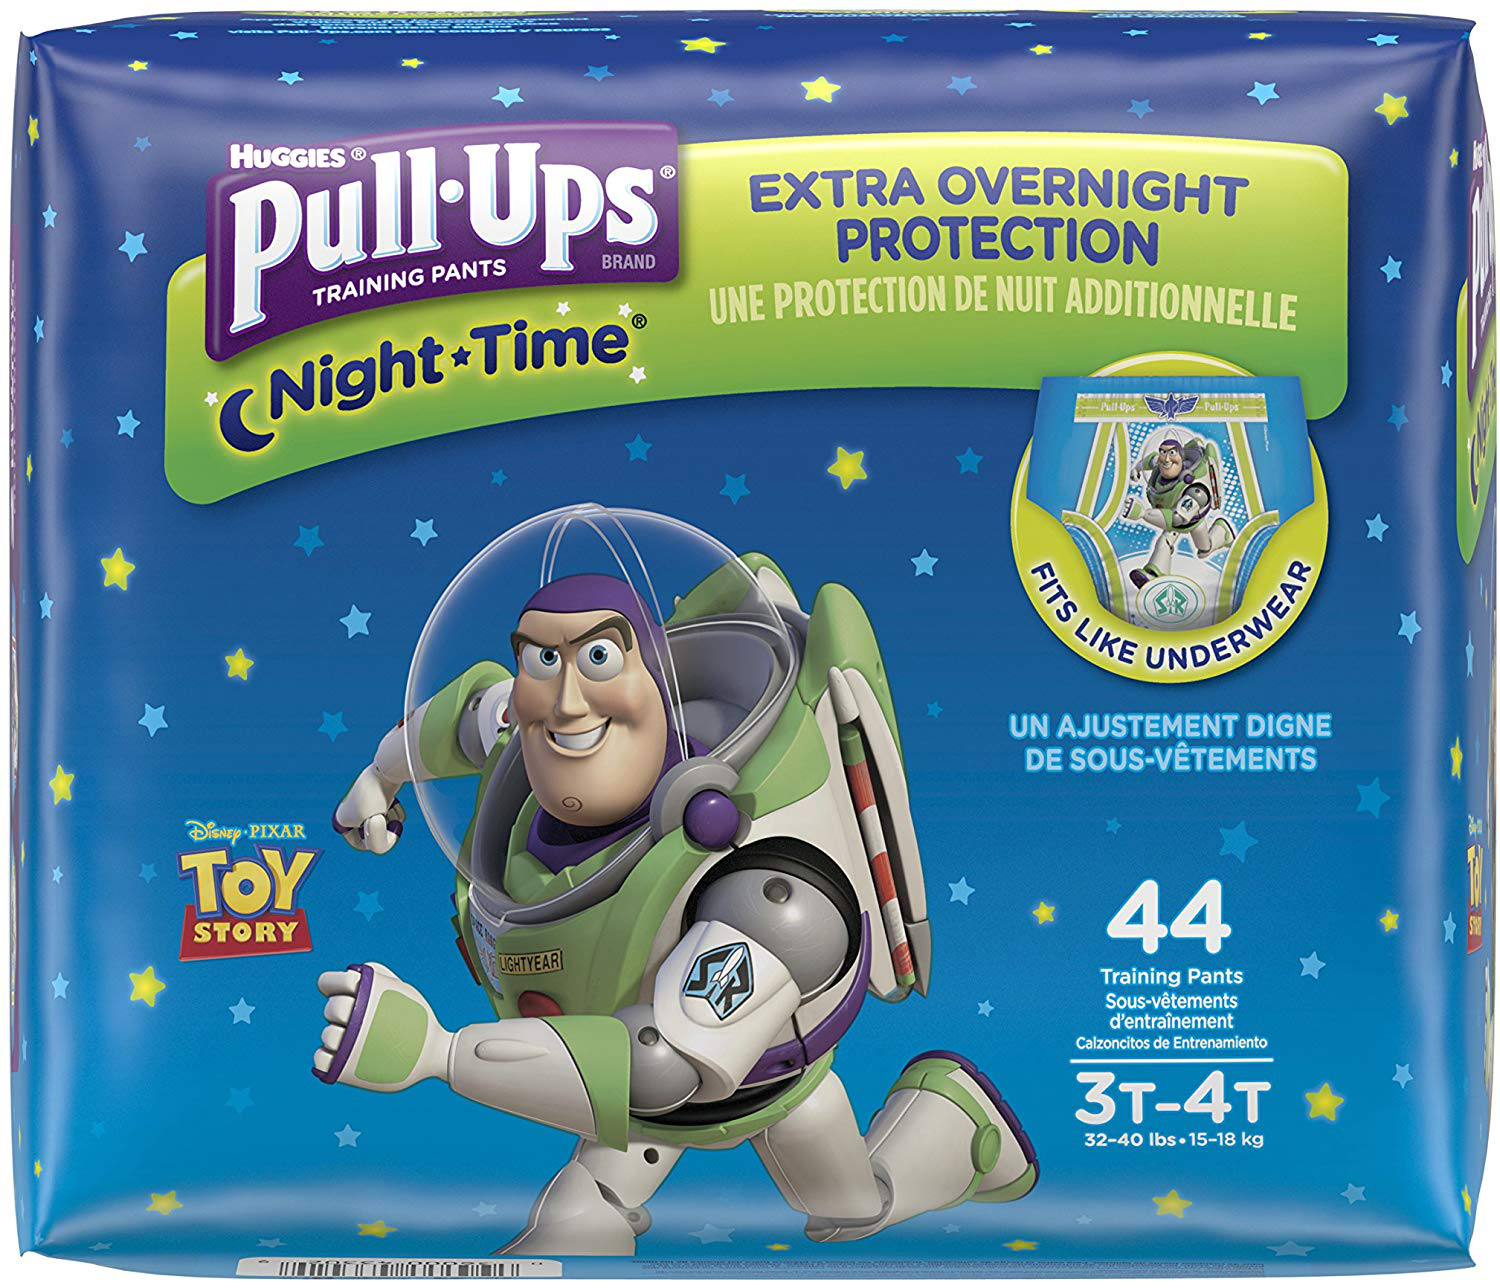 Huggies Pull-Ups are available in a variety of Disney brands, including Toy Story